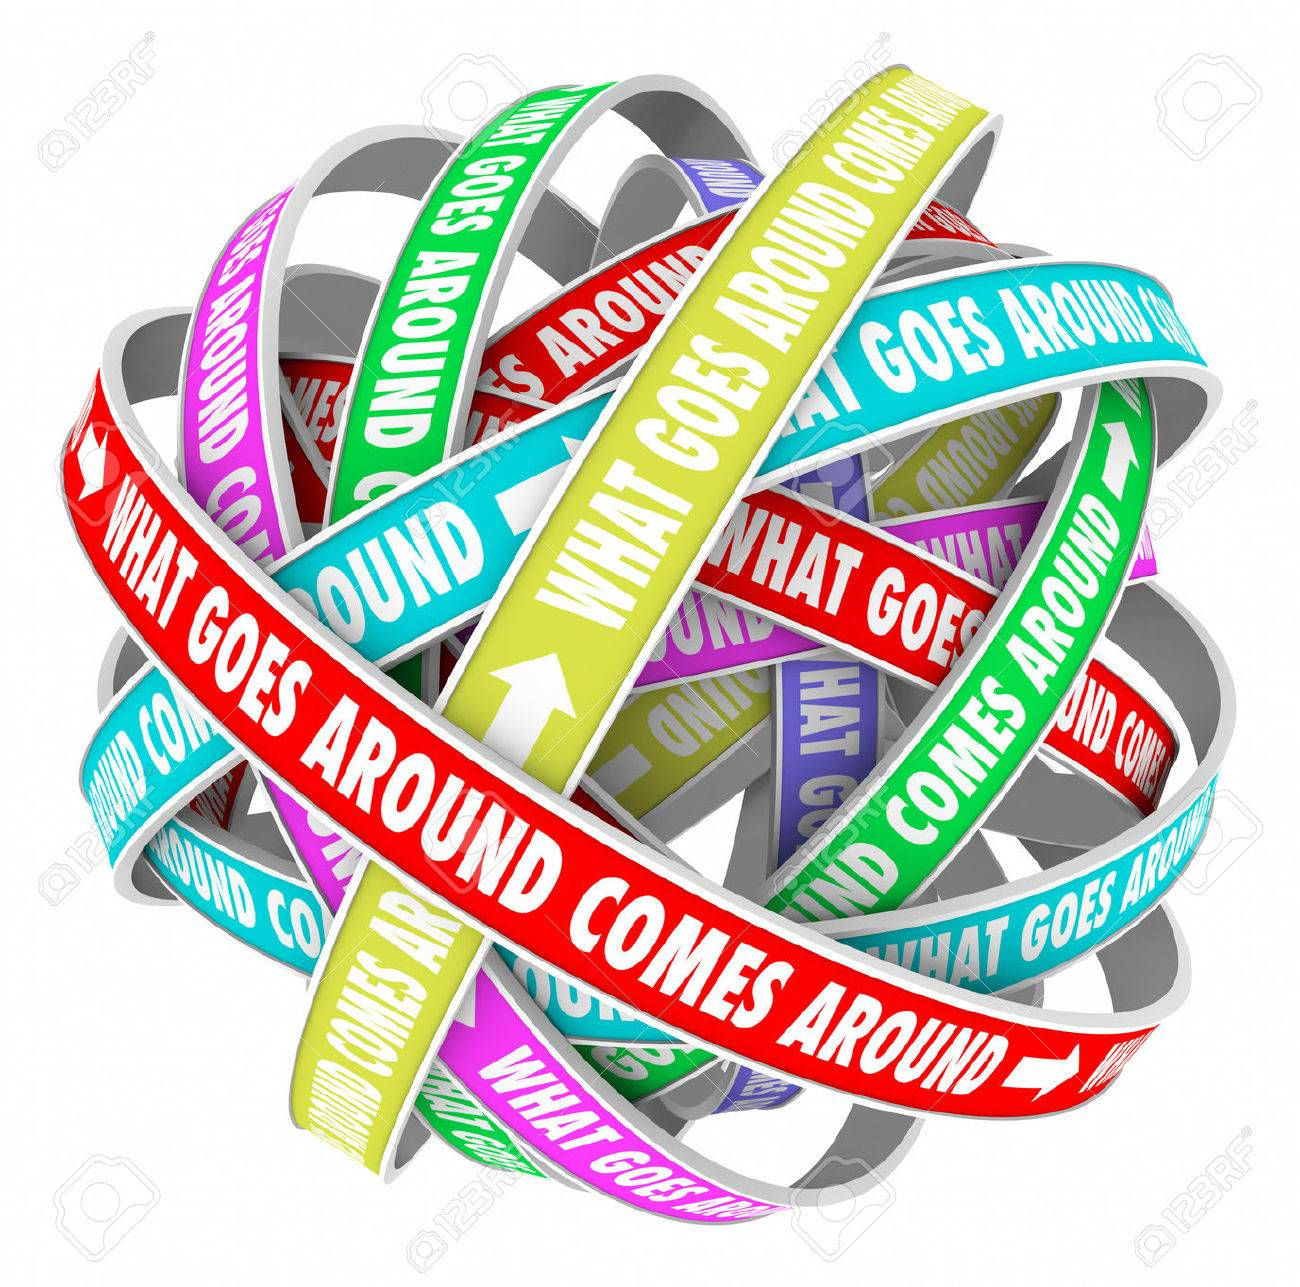 What Goes Around Comes Around Saying Or Quote On Colorful Ribbons